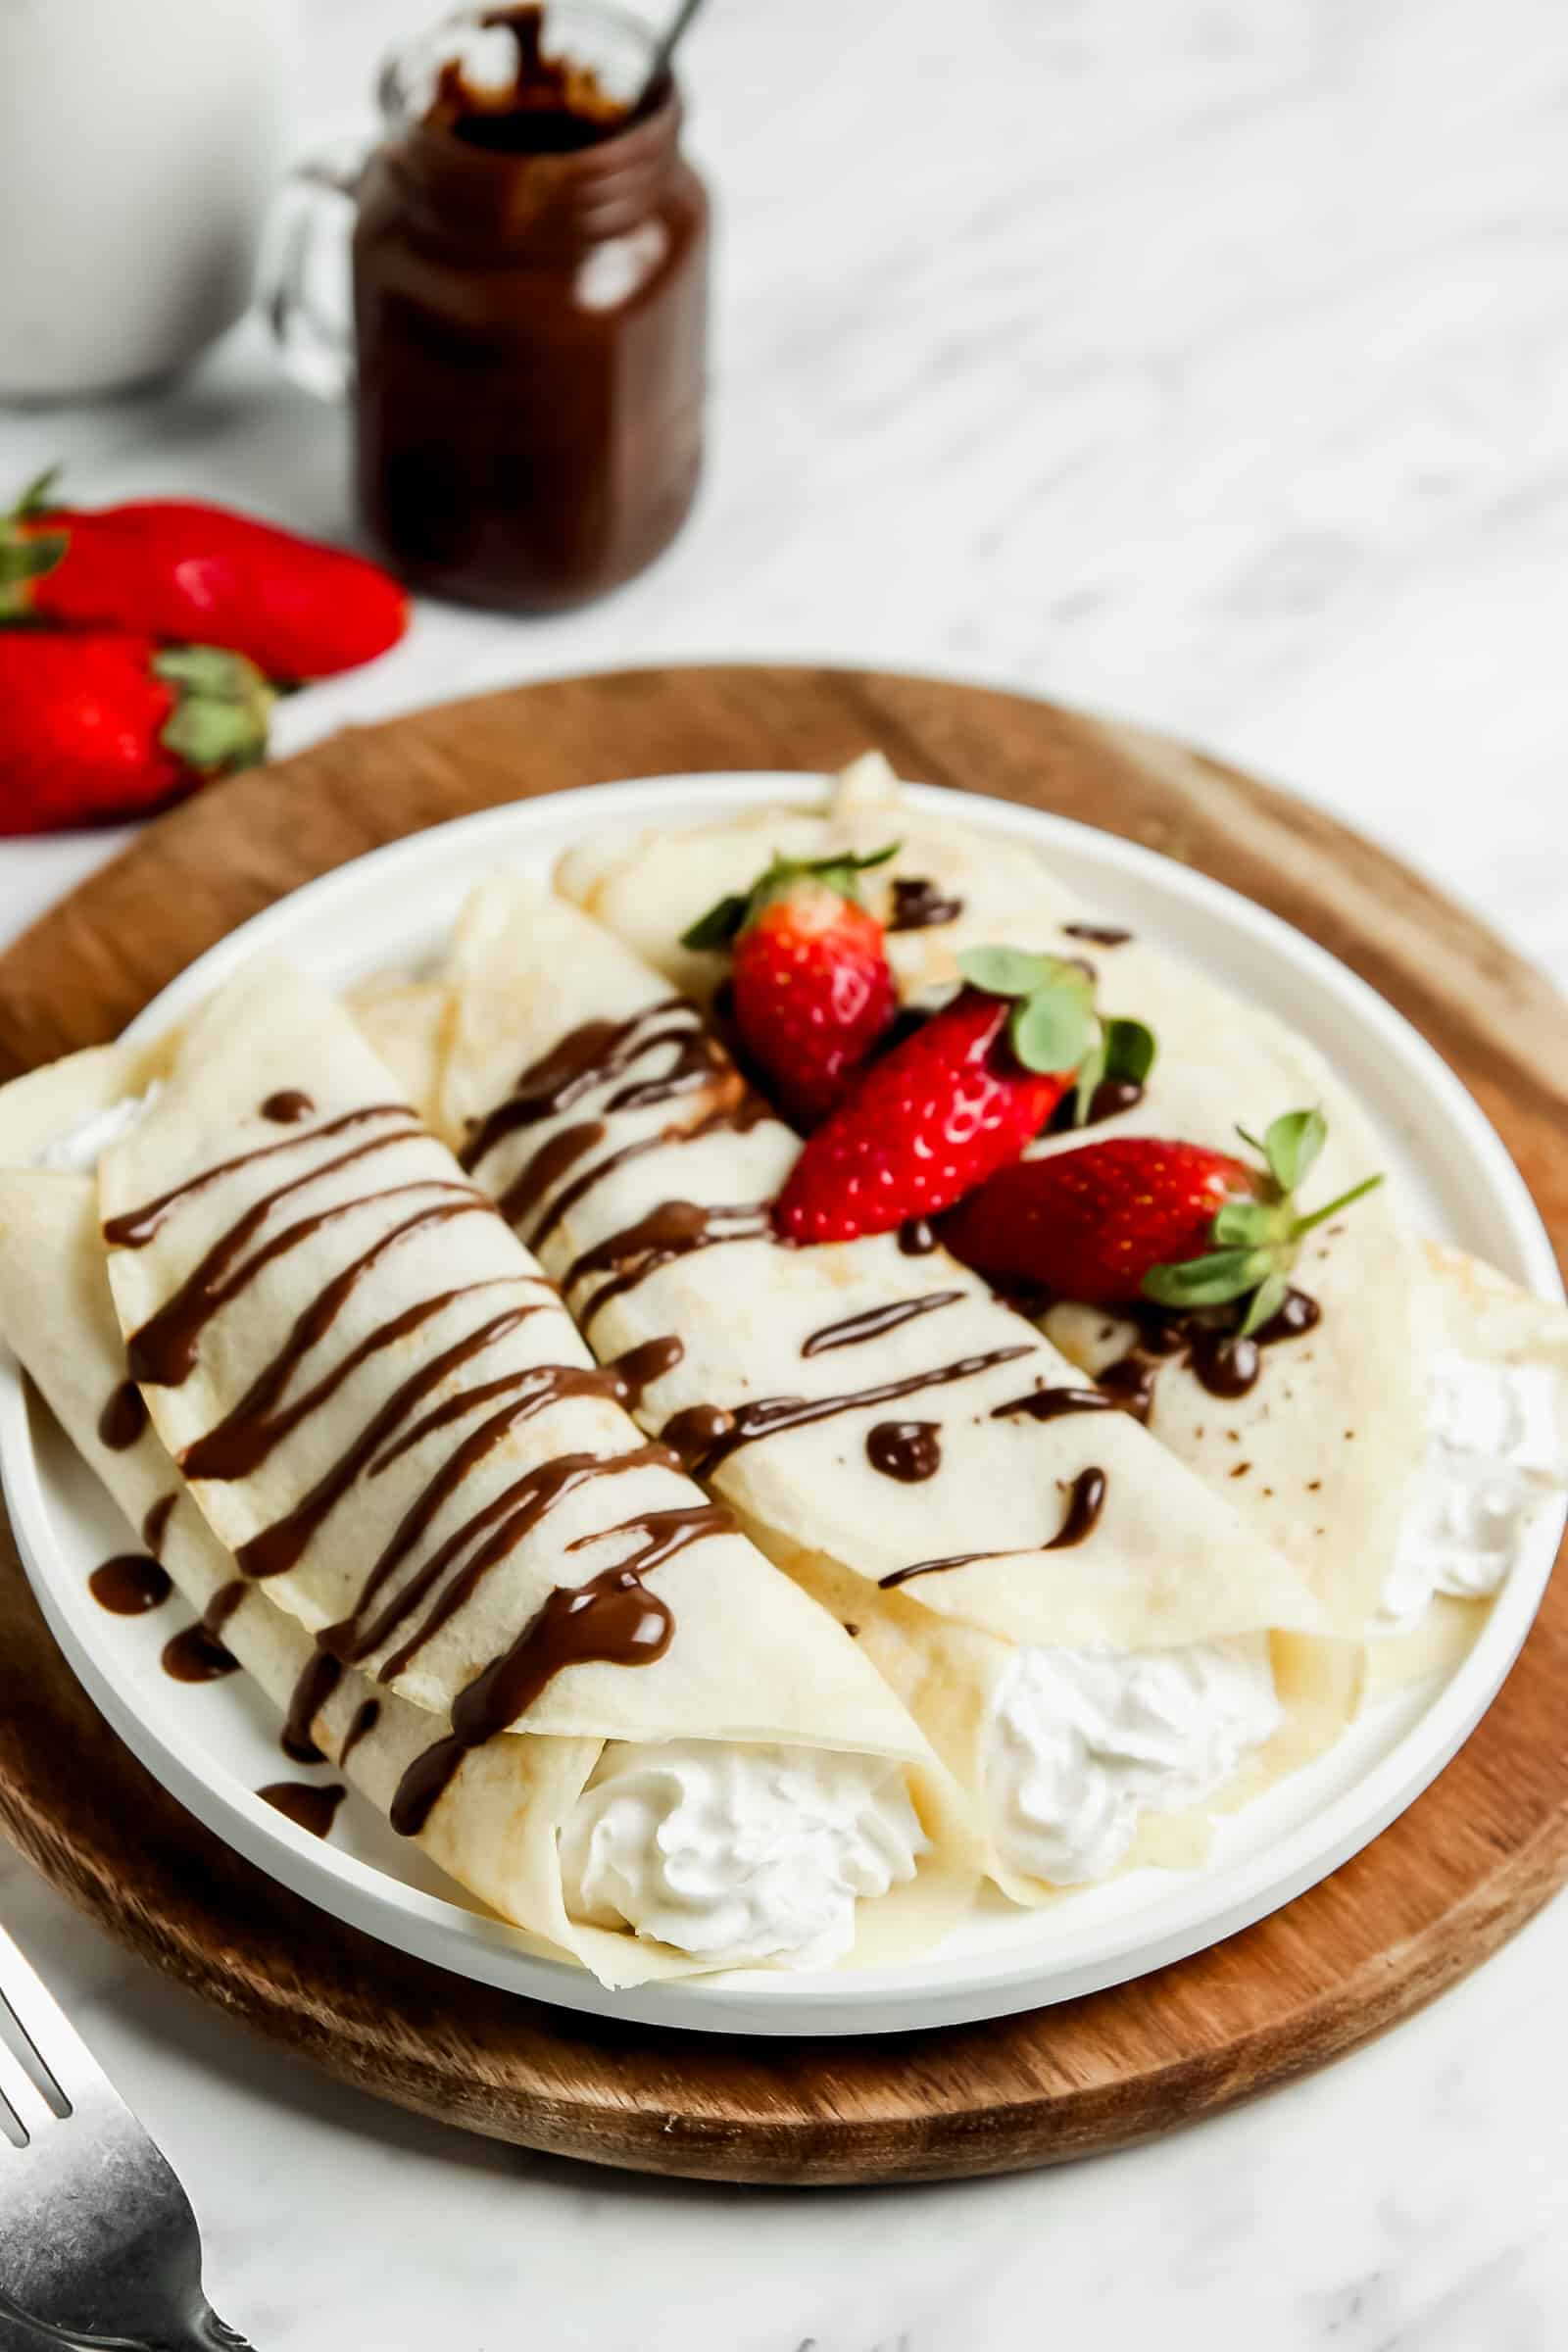 two crepes filled with whipped cream on a plate